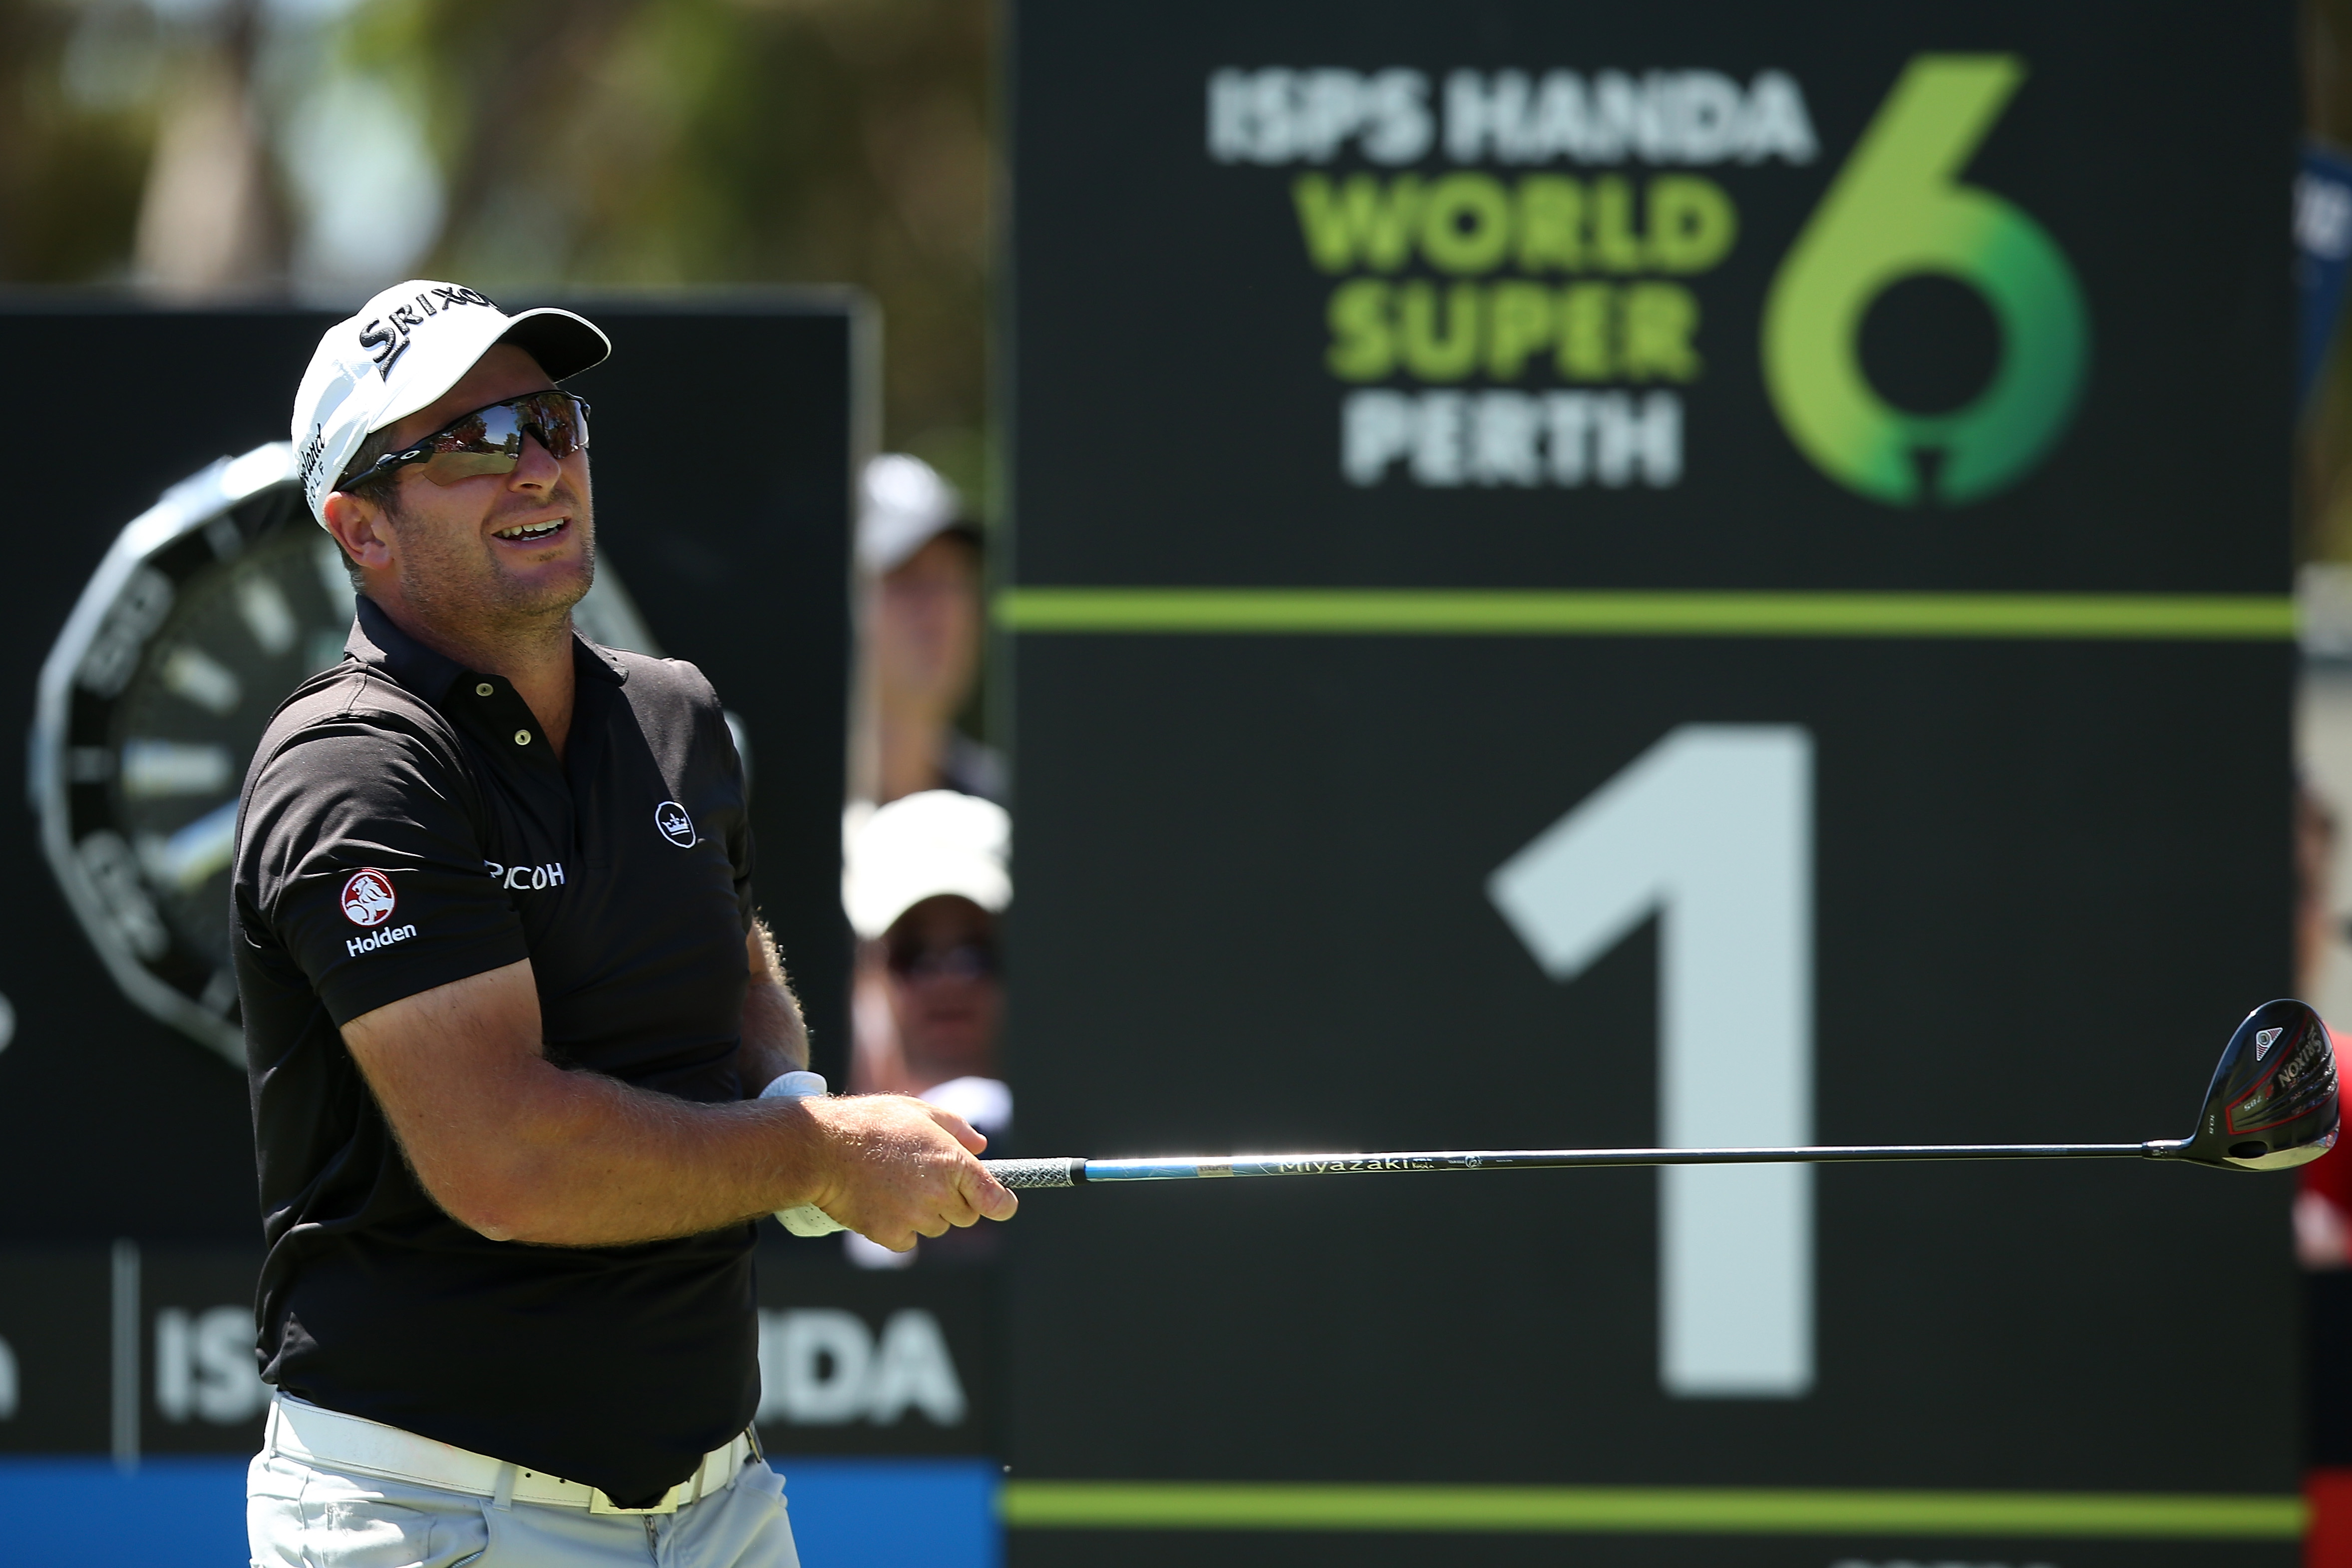 PERTH, AUSTRALIA - FEBRUARY 17: Ryan Fox of New Zealand watches his tee shot on the 1st hole during day 4 of the ISPS Handa World Super 6 Perth at Lake Karrinyup Country Club on February 17, 2019 in Perth, Australia. (Photo by Paul Kane/Getty Images)